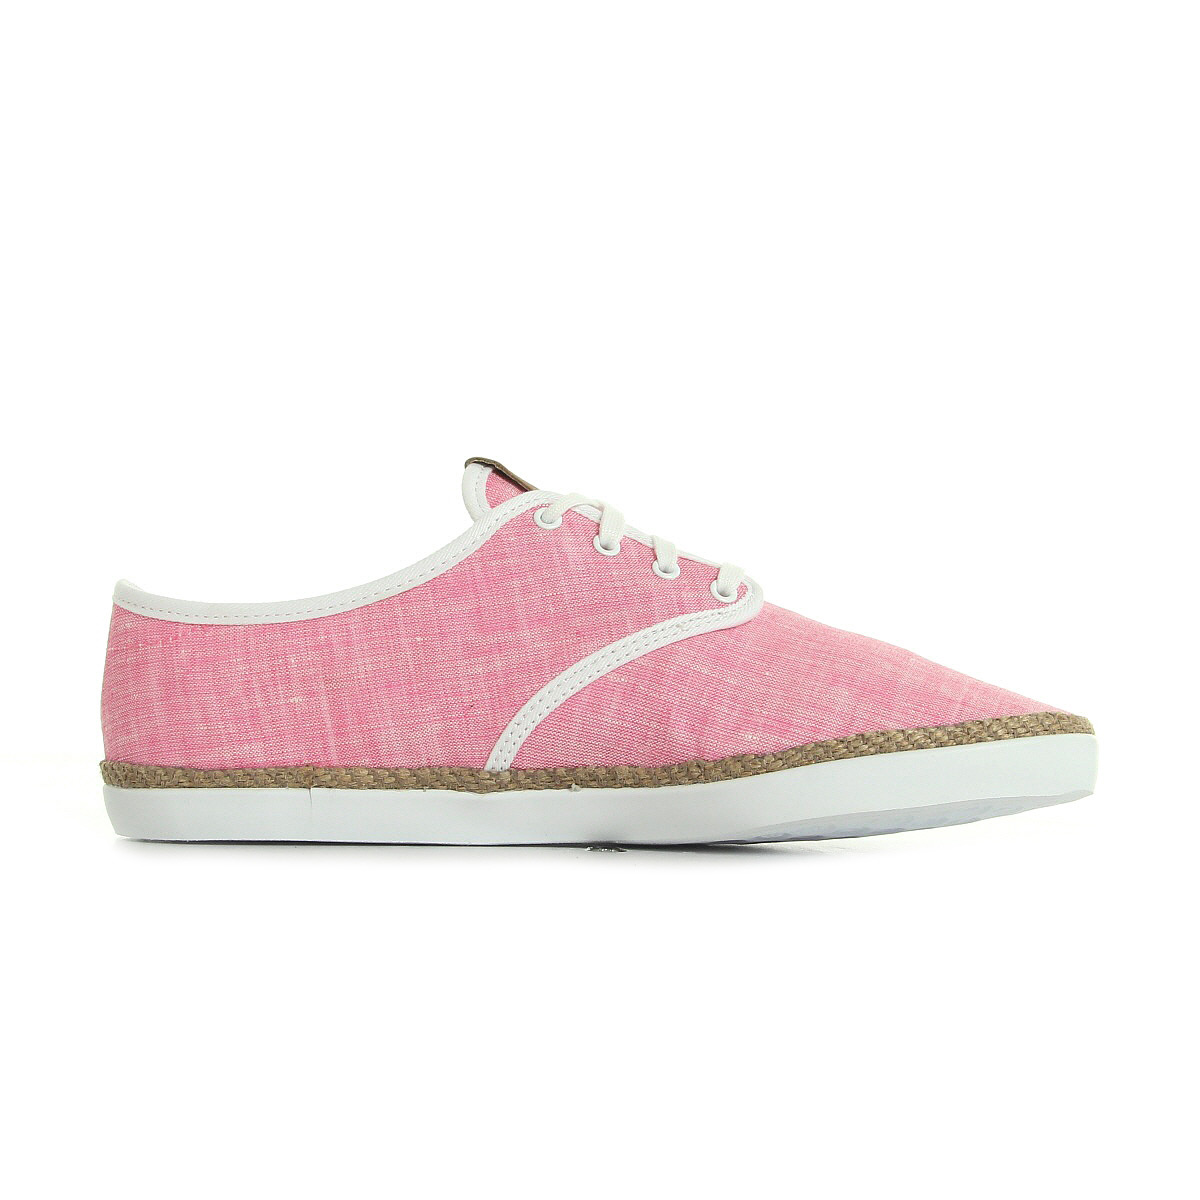 adidas Adria PS W B35692, Baskets mode femme